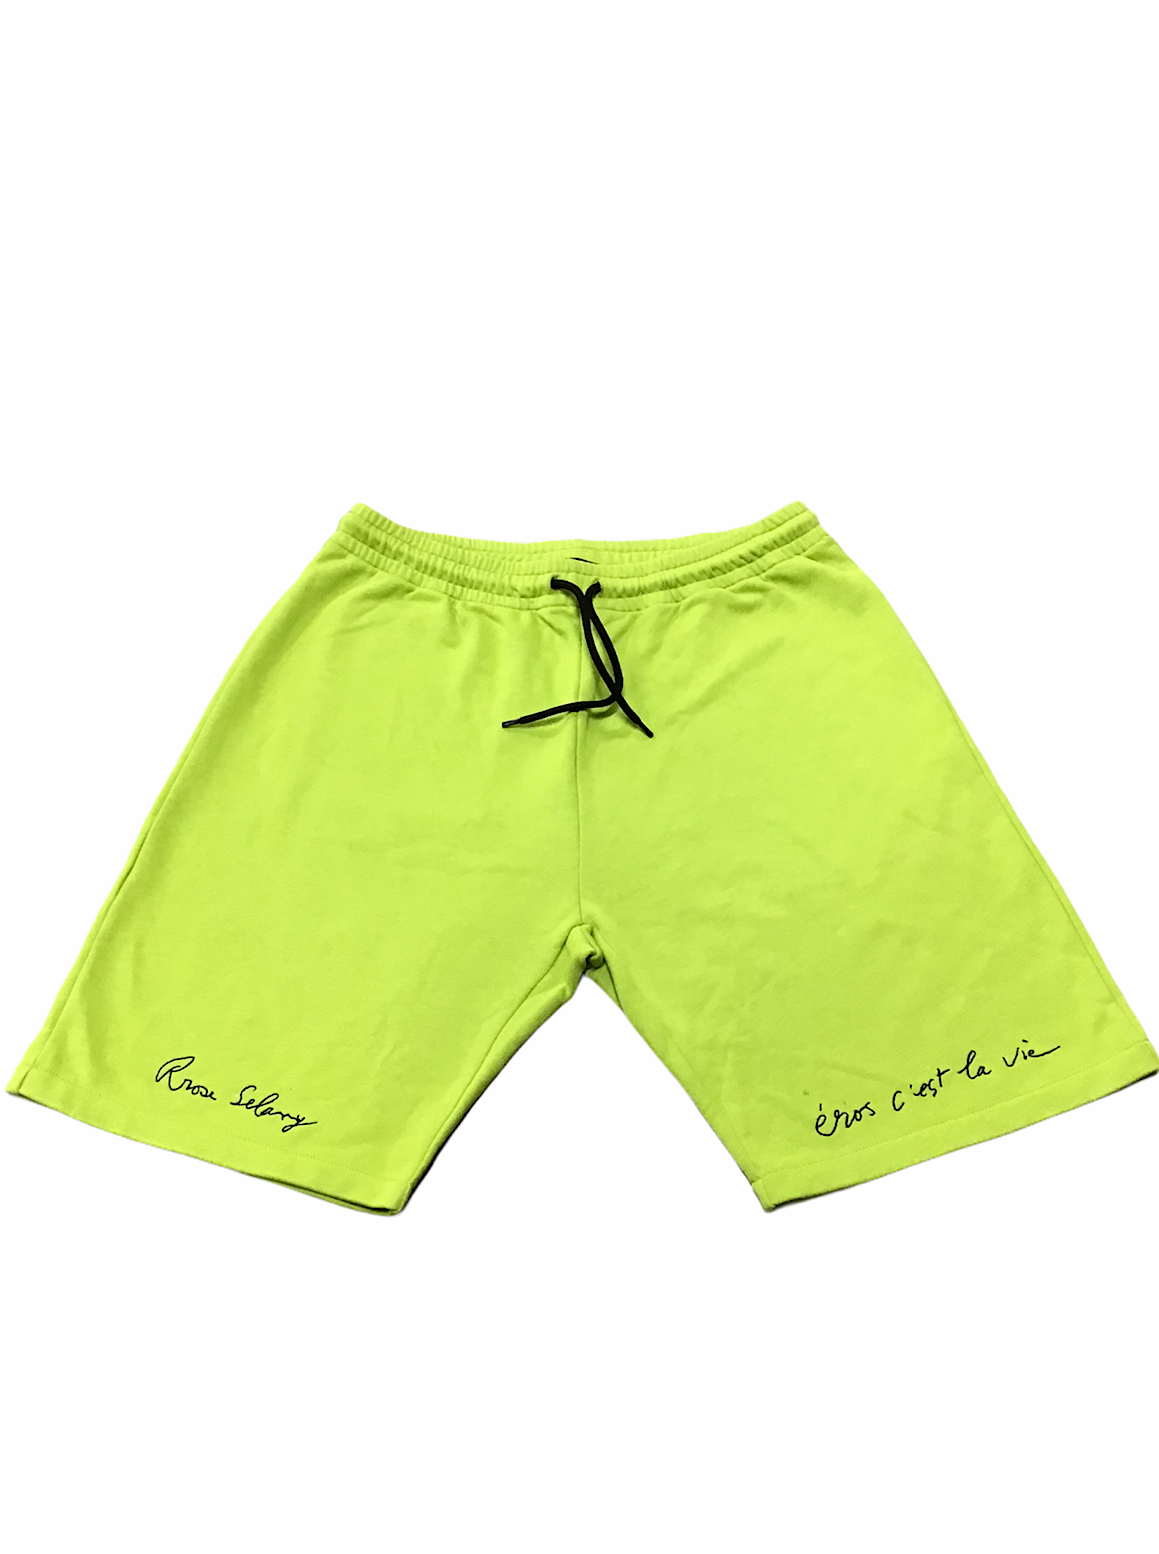 A Bush Of Ghosts Shorts - Neon Green